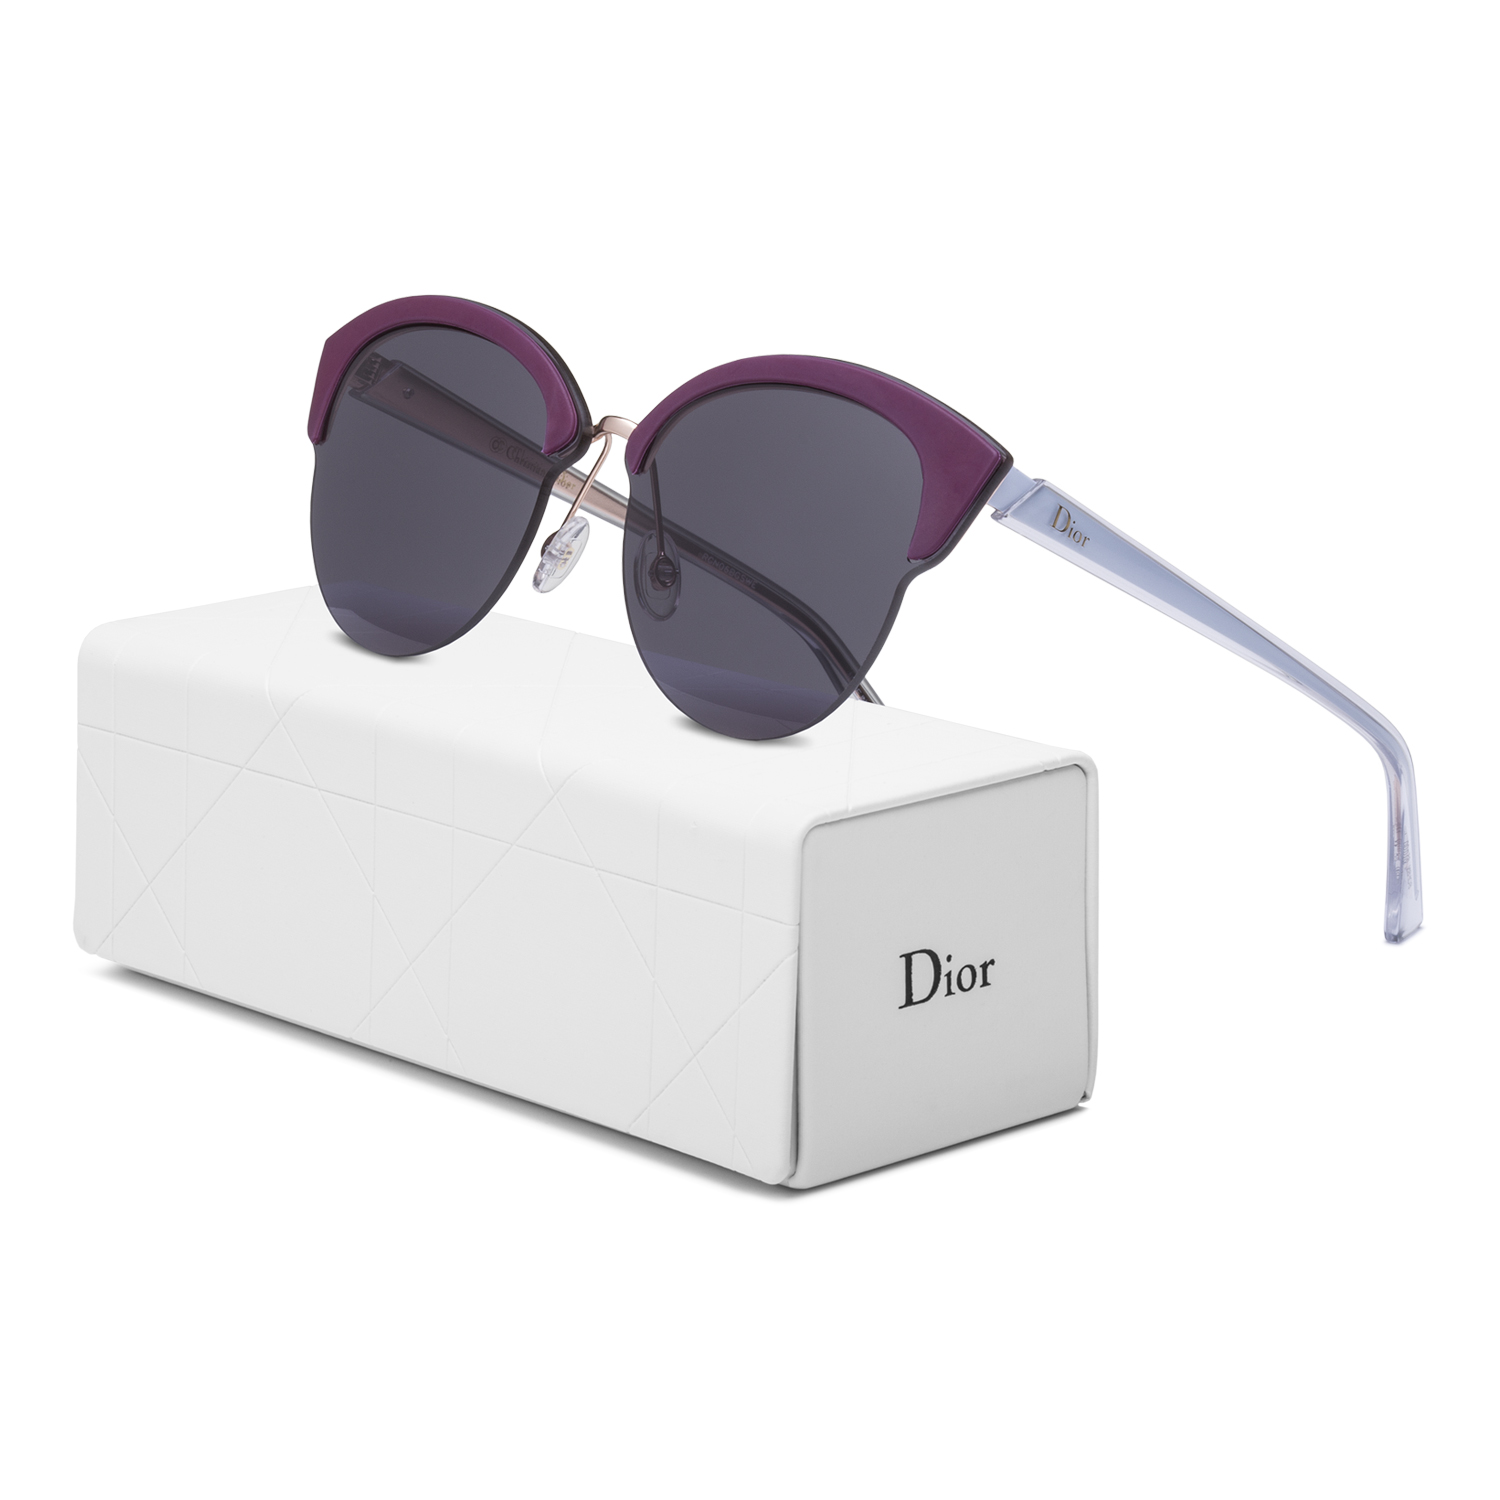 70087498a54e4 Dior Sunglasses On Ebay